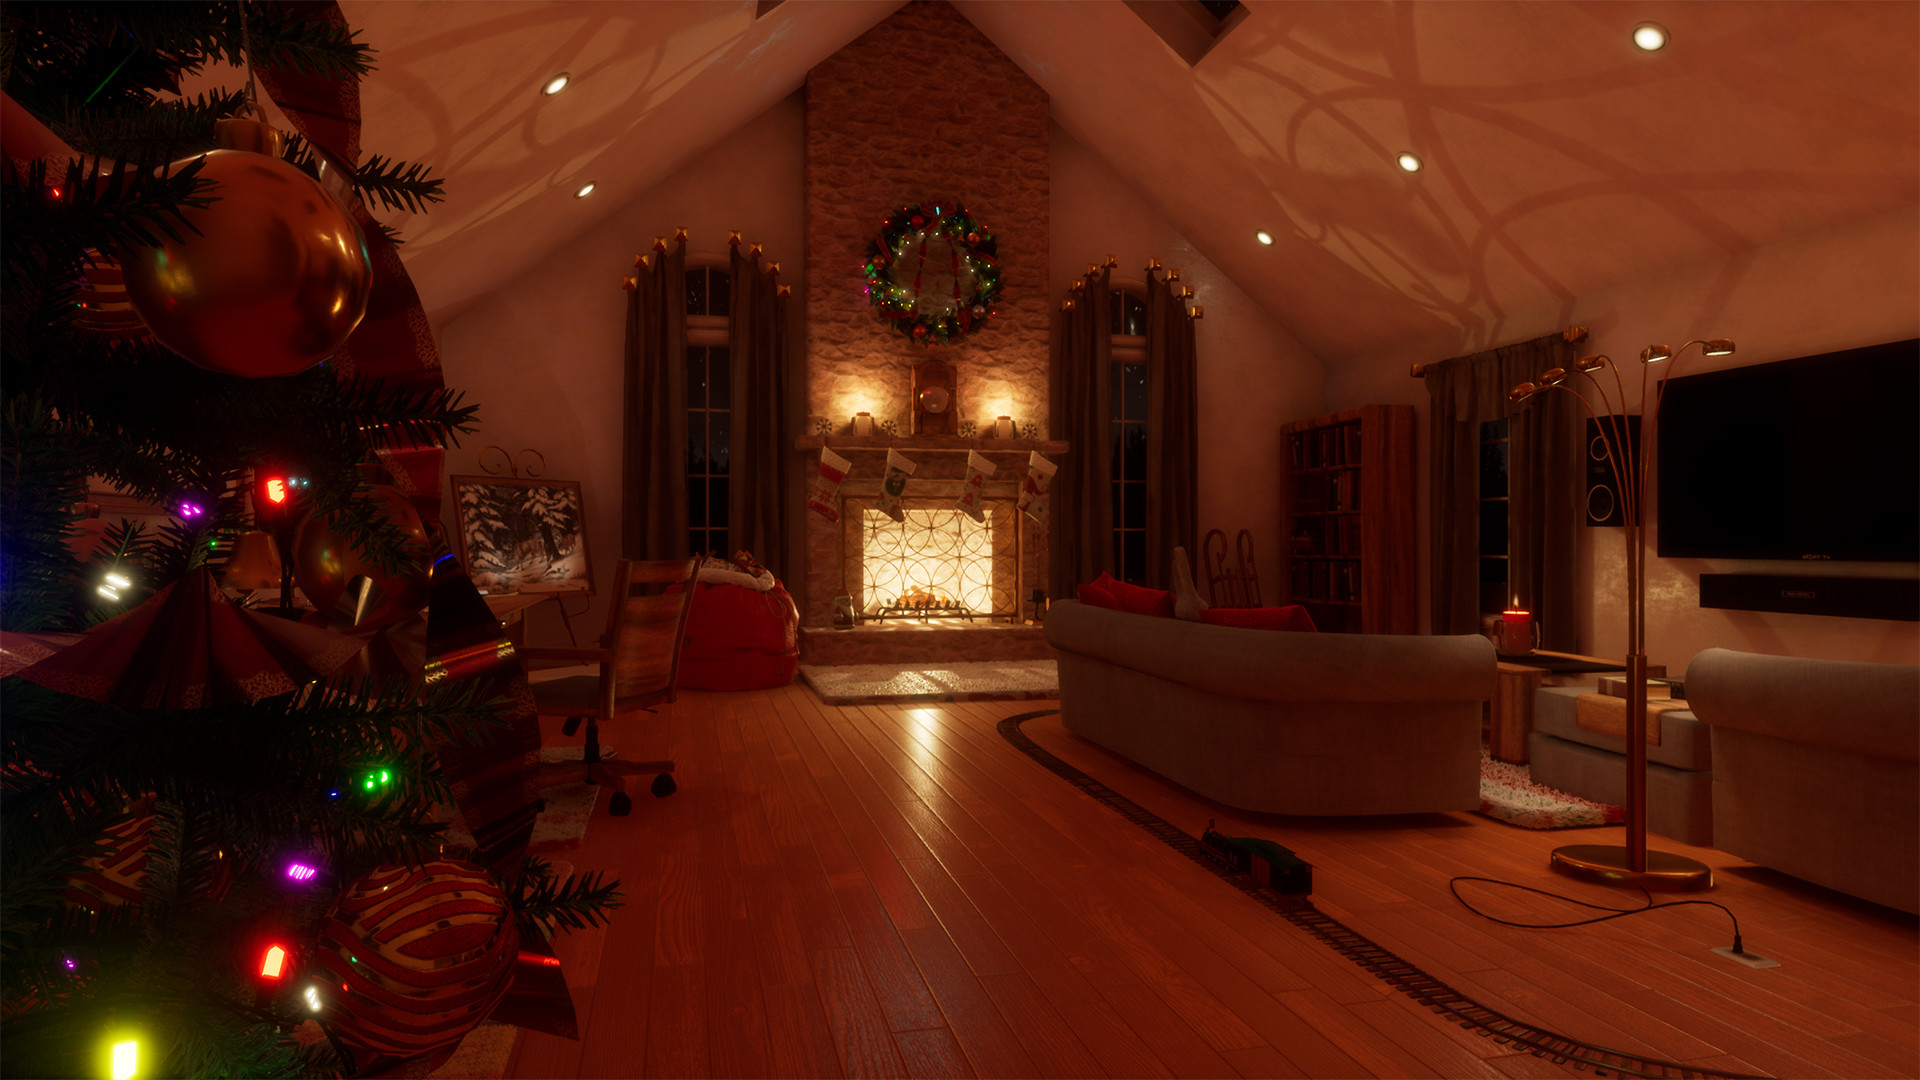 Ho Ho Ho! It's Time For 'Santa's Visit' In VR